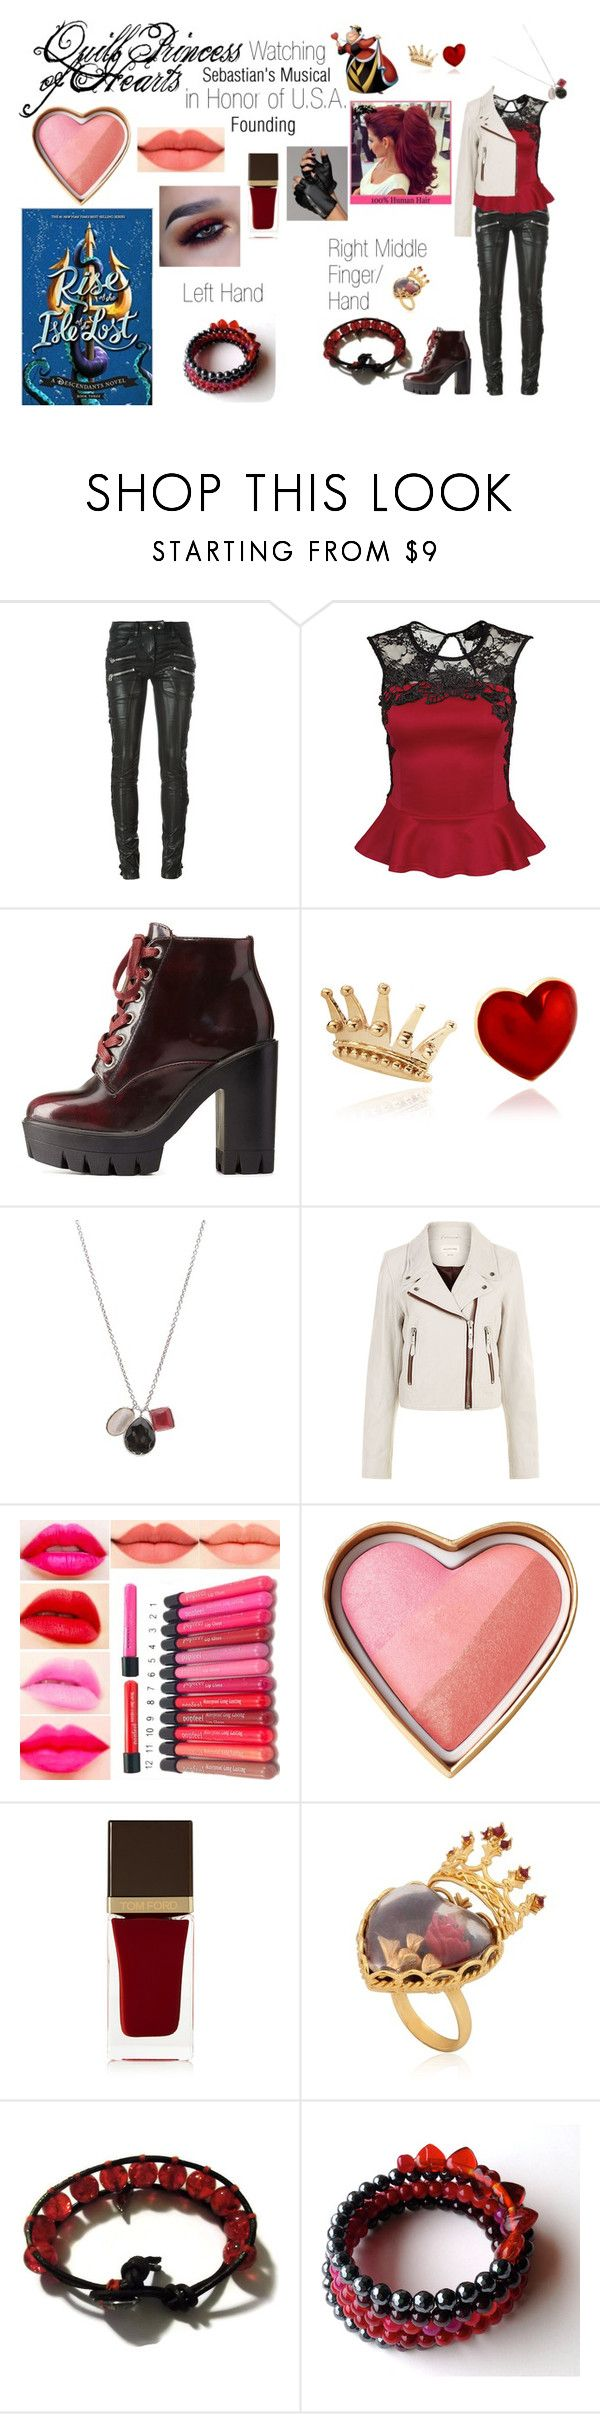 """""""Disney Descendants: Watching Sebastian's Musical in Honor of U.S.A. Founding: Quill: Princess of Hearts"""" by e-auradon on Polyvore featuring Faith Connexion, Chicnova Fashion, Charlotte Russe, Alison Lou, Ippolita, Étoile Isabel Marant, Tom Ford and Dolce&Gabbana"""